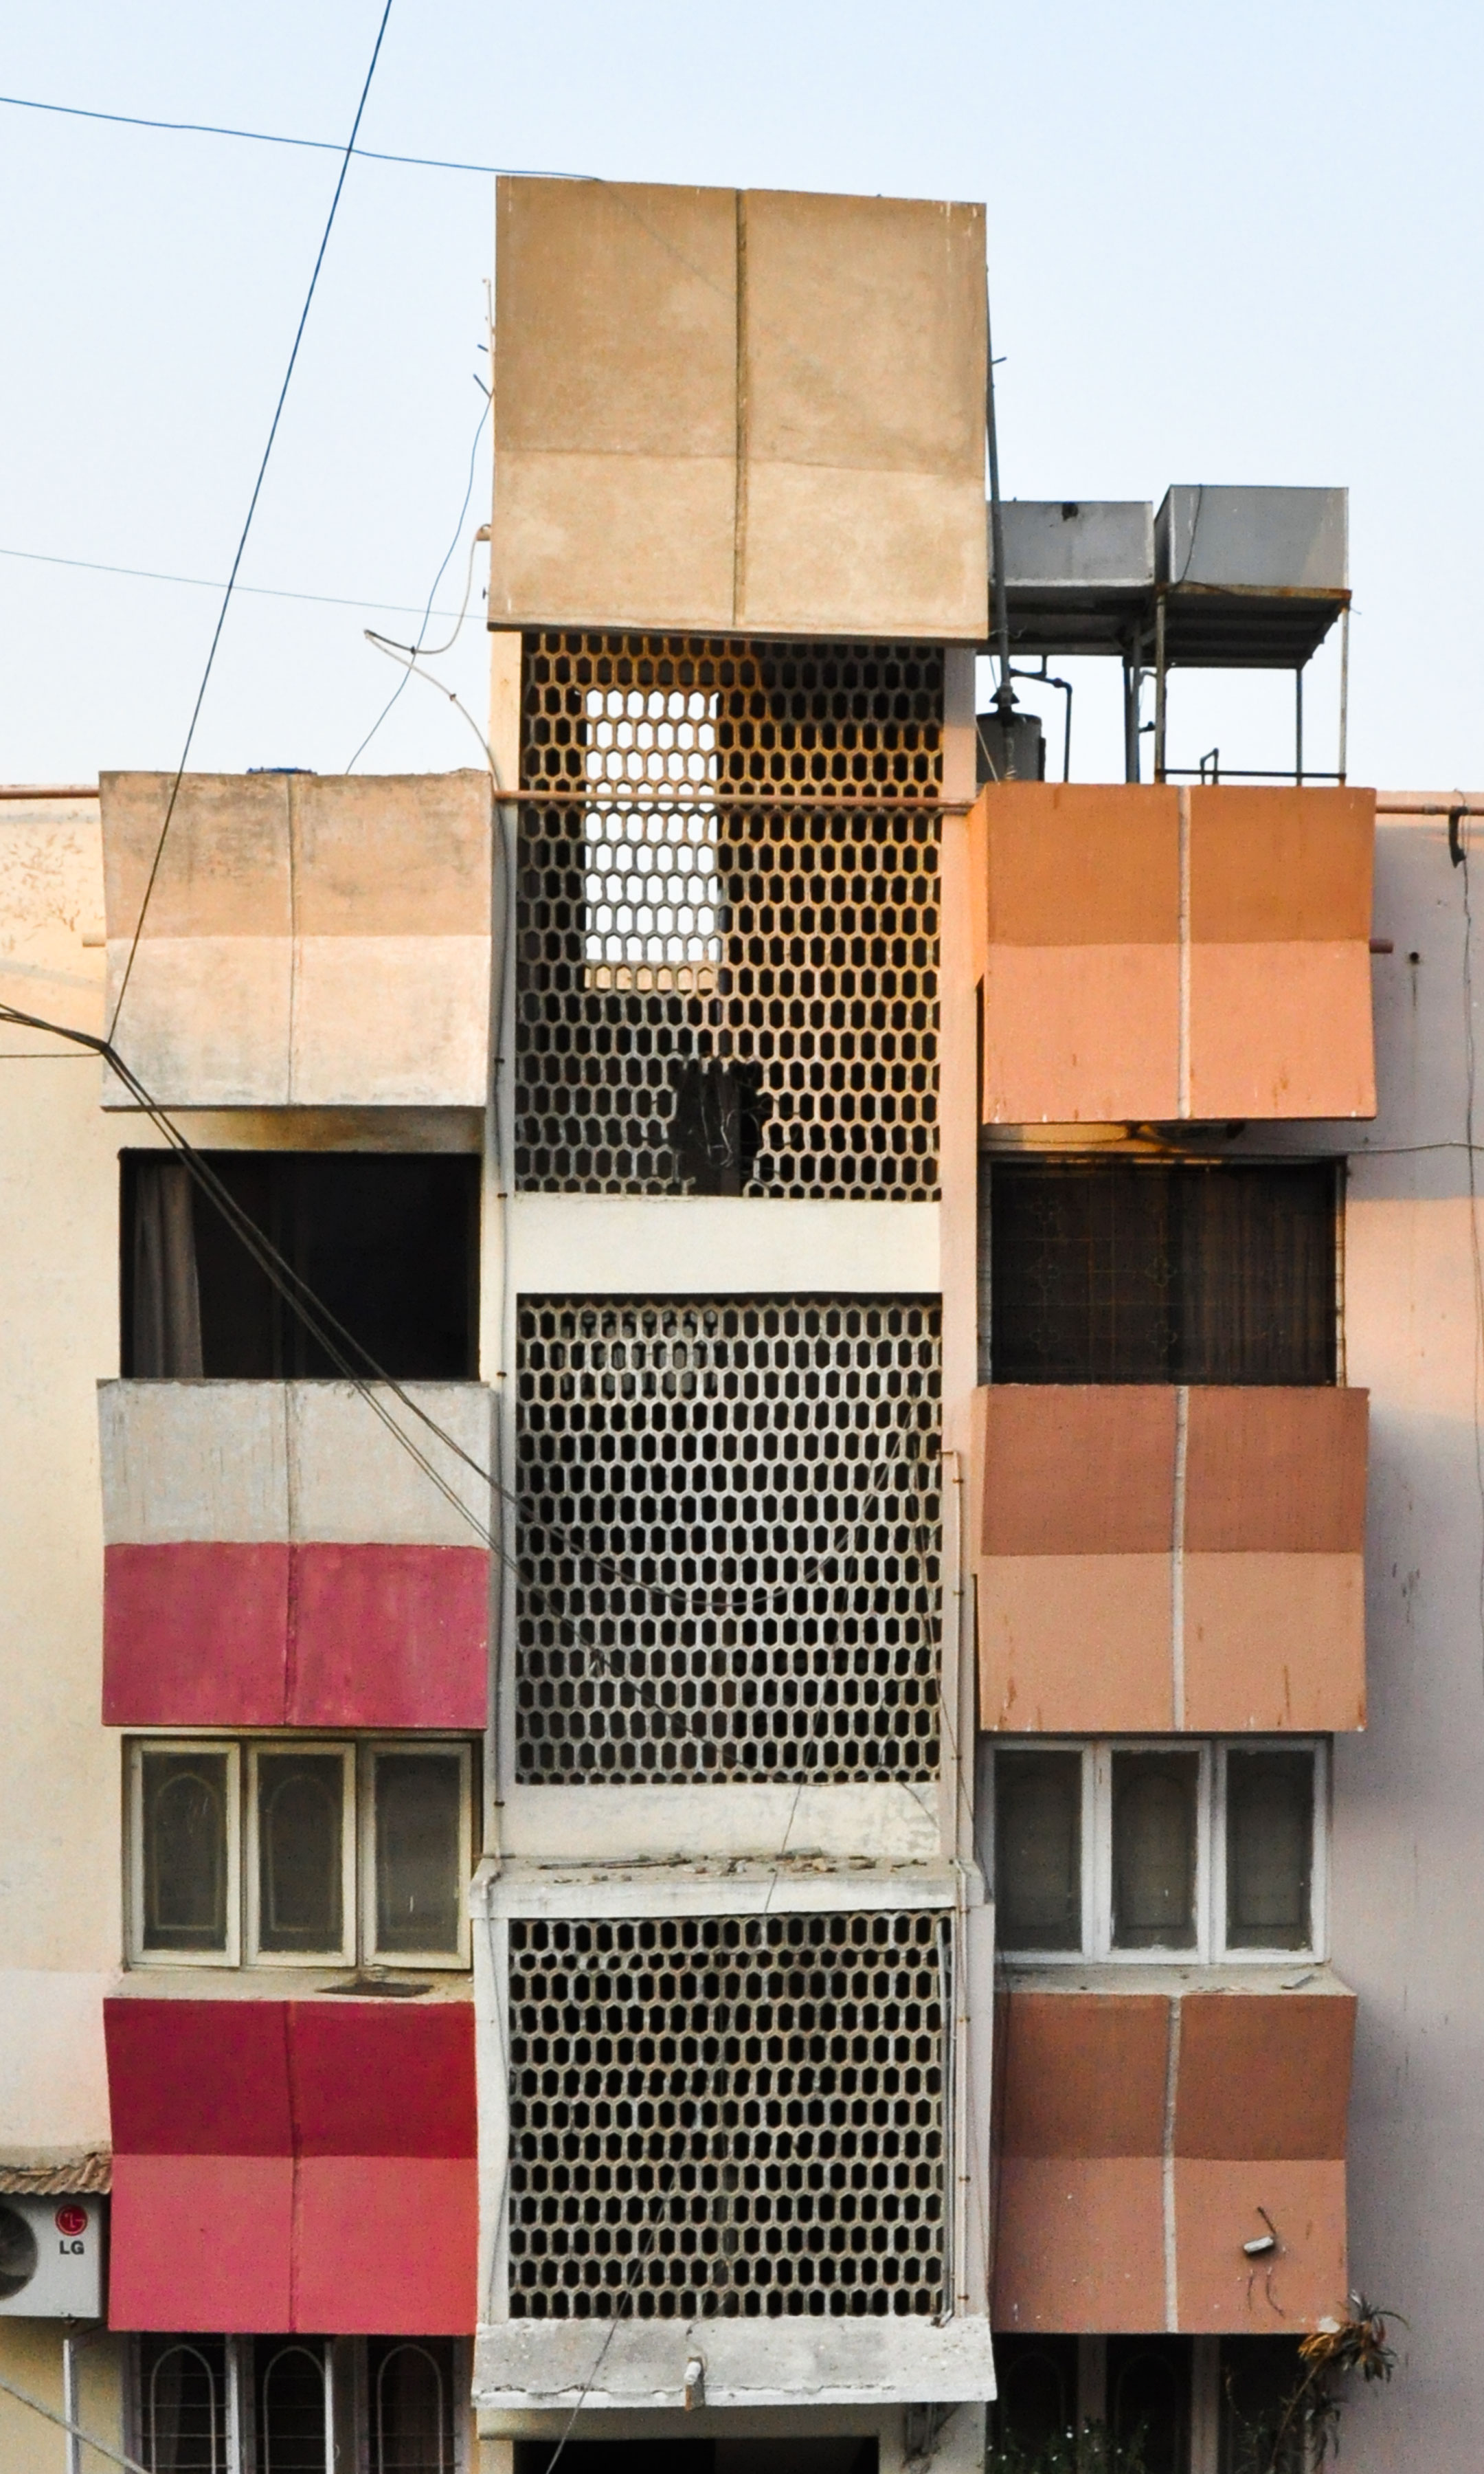 facade painted red by the Pathan neighbours